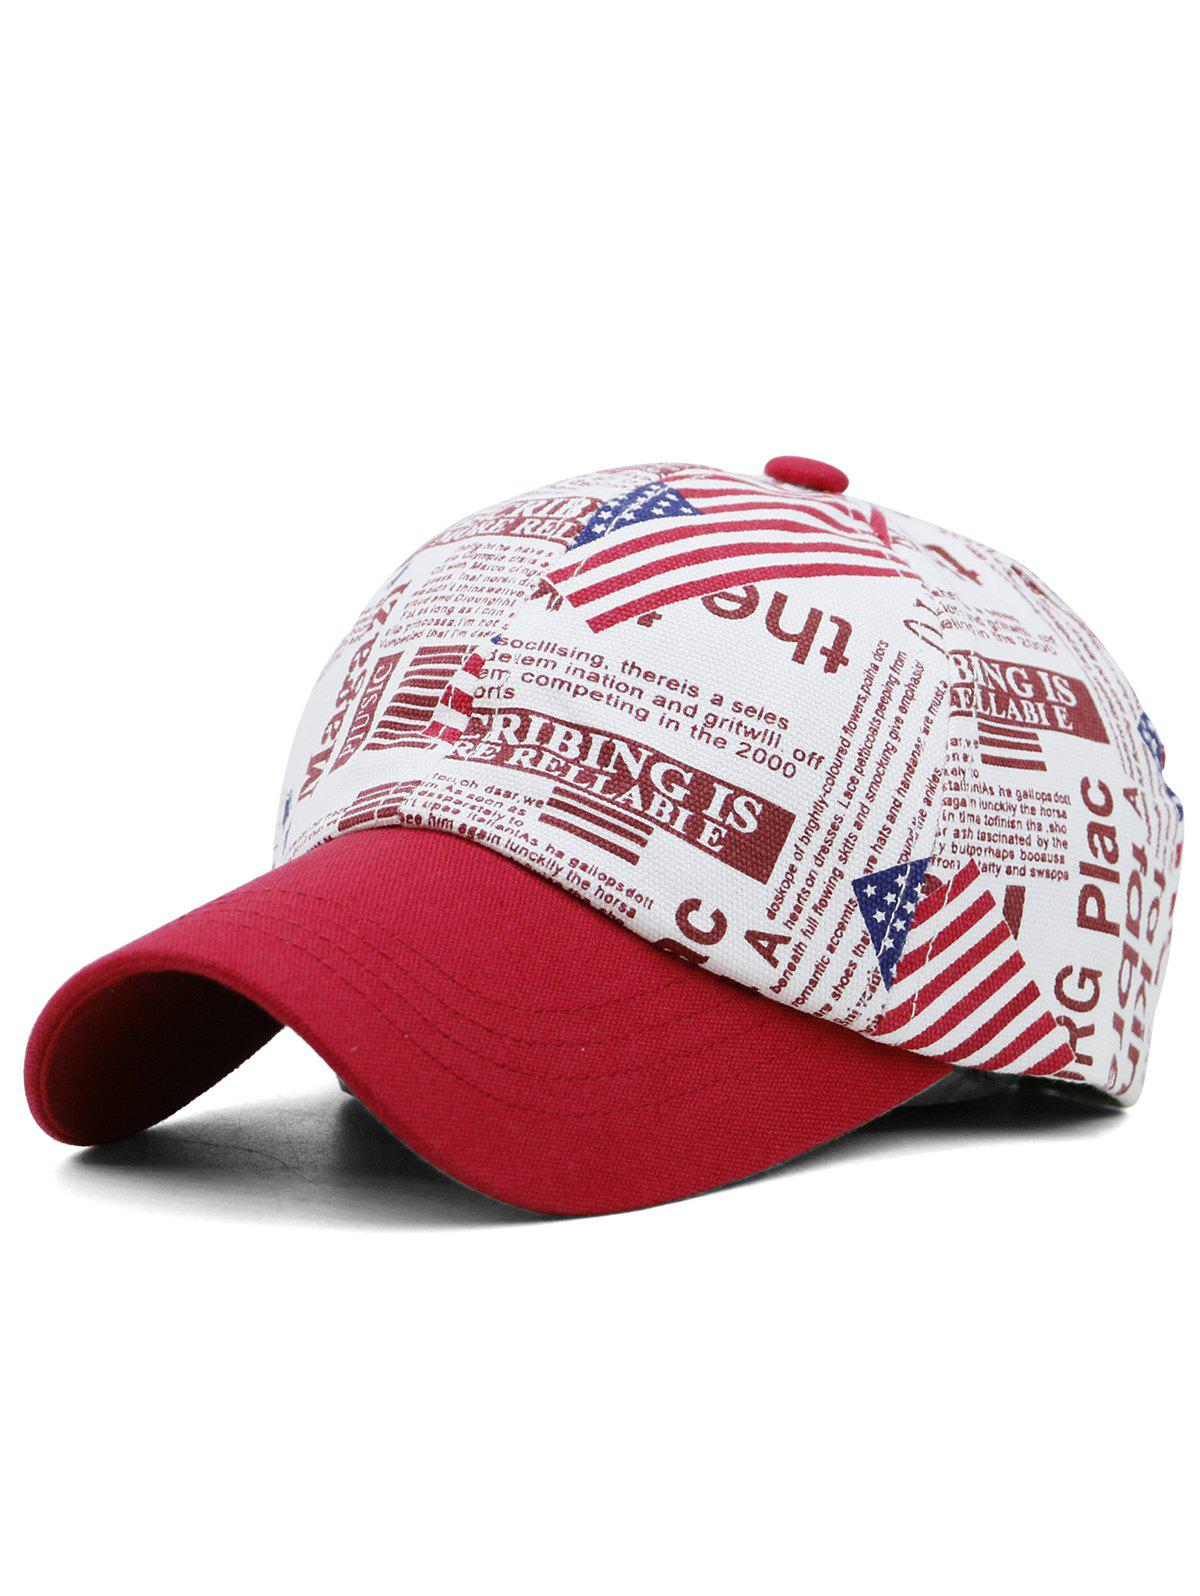 Outfits USA Flag Printed Adjustable Sunscreen Hat